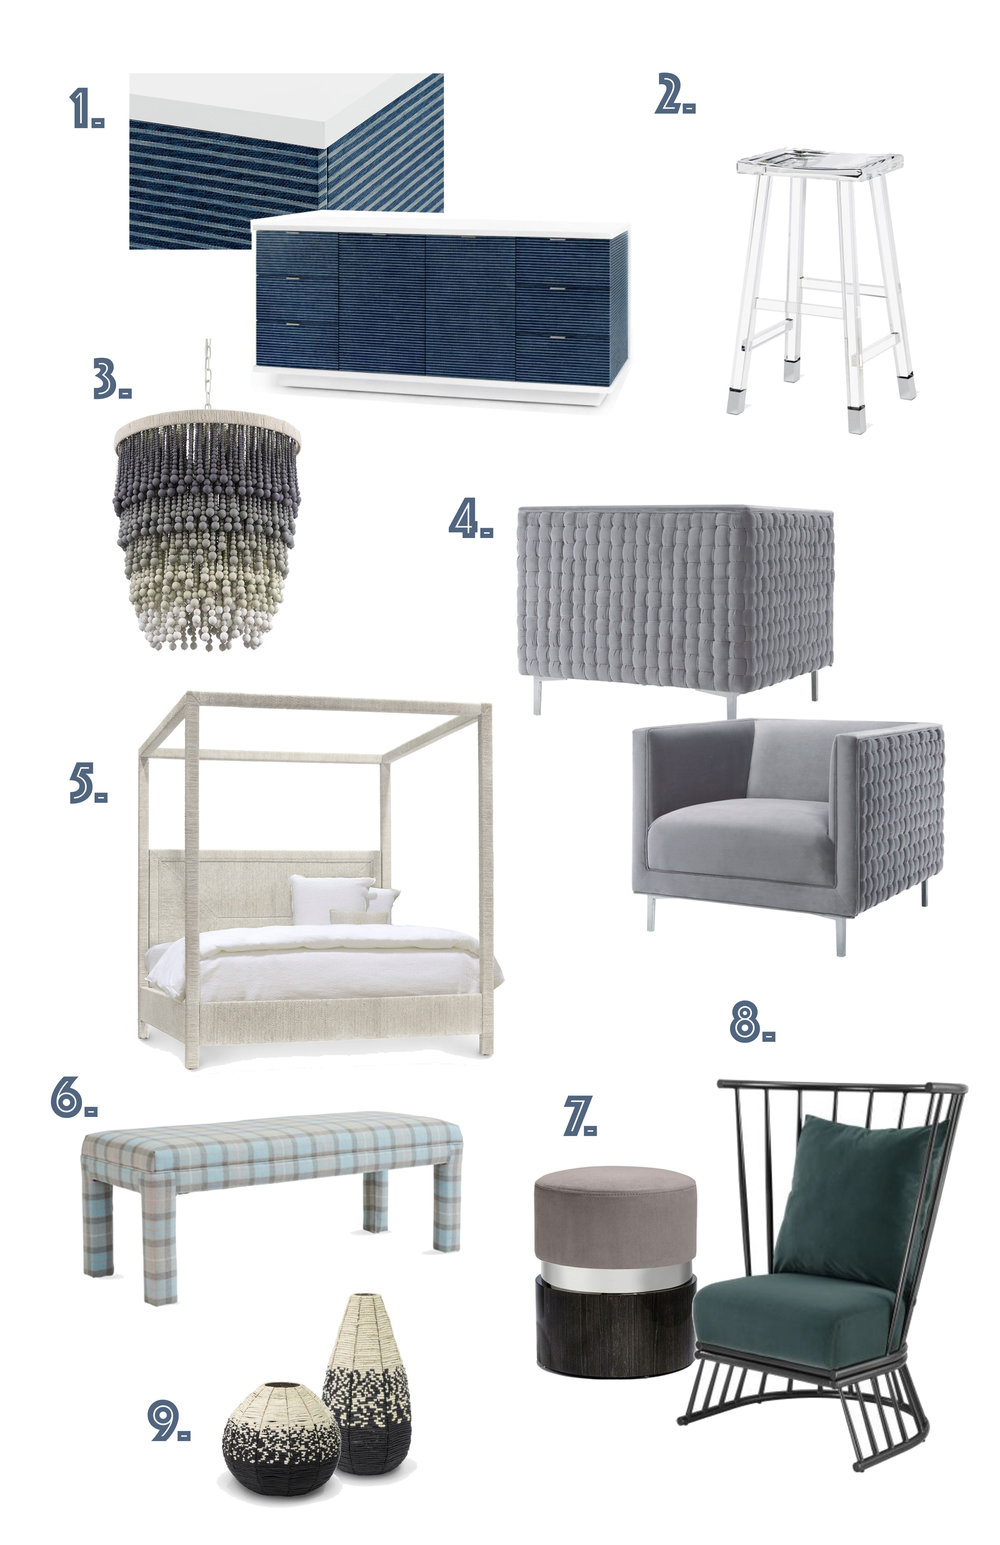 1. Cosmopolitan Buffet/Cabinet; Bungalow 5, 2. Reva Bar Stool; Interlude 3. Solano Pendant; Palecek 4. Sal Woven Chair; TovFurniture 5. Woodside Canopy Bed; Palecek 6. Brittany Bench; Kim Salmela 7. Kelsey Stool; Interlude 8. Jupiter Chair; NPD 9. Suma Beaded Urn; Palecek